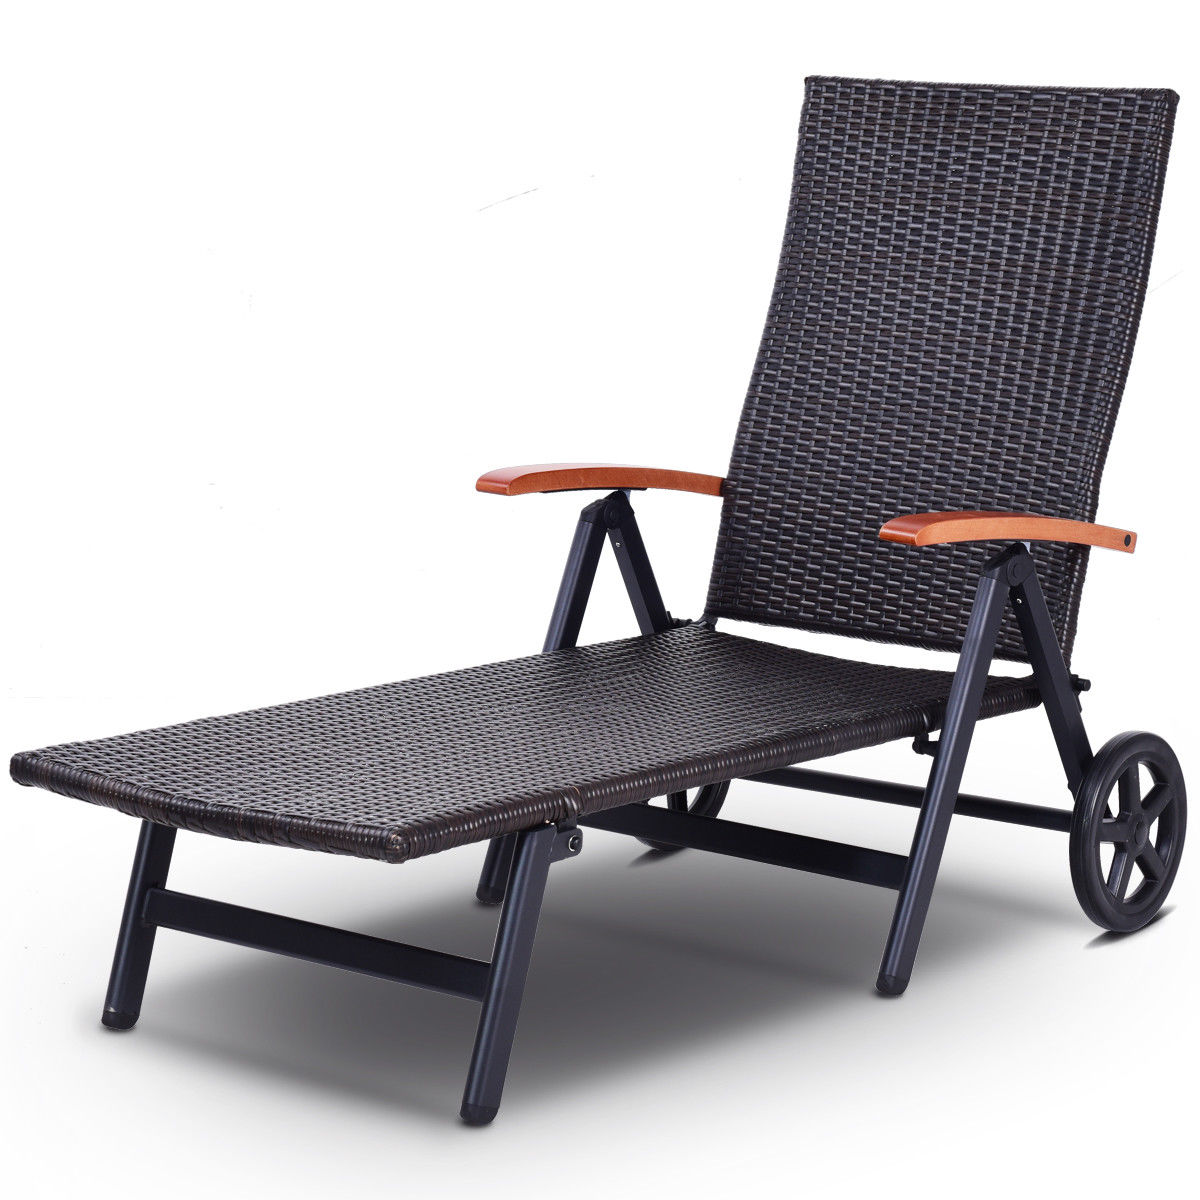 Gymax Folding Back Adjustable Aluminum Rattan Lounger Recliner Chair W/ Wheels Brown